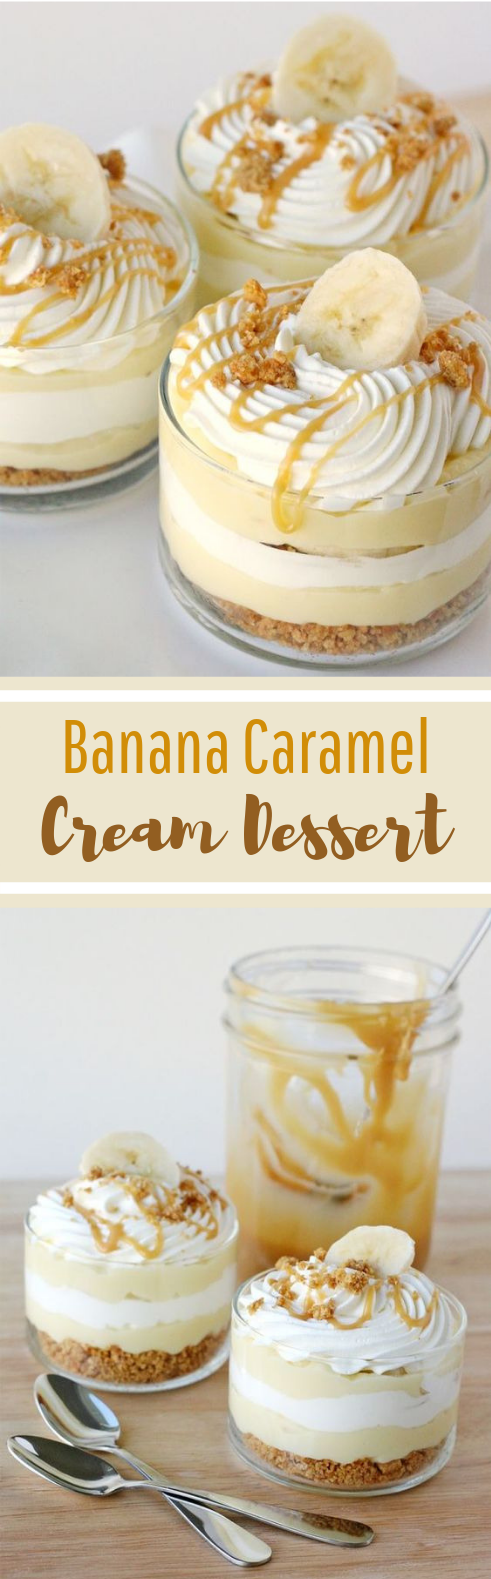 Banana Caramel Cream Dessert #sweettreat #desserts